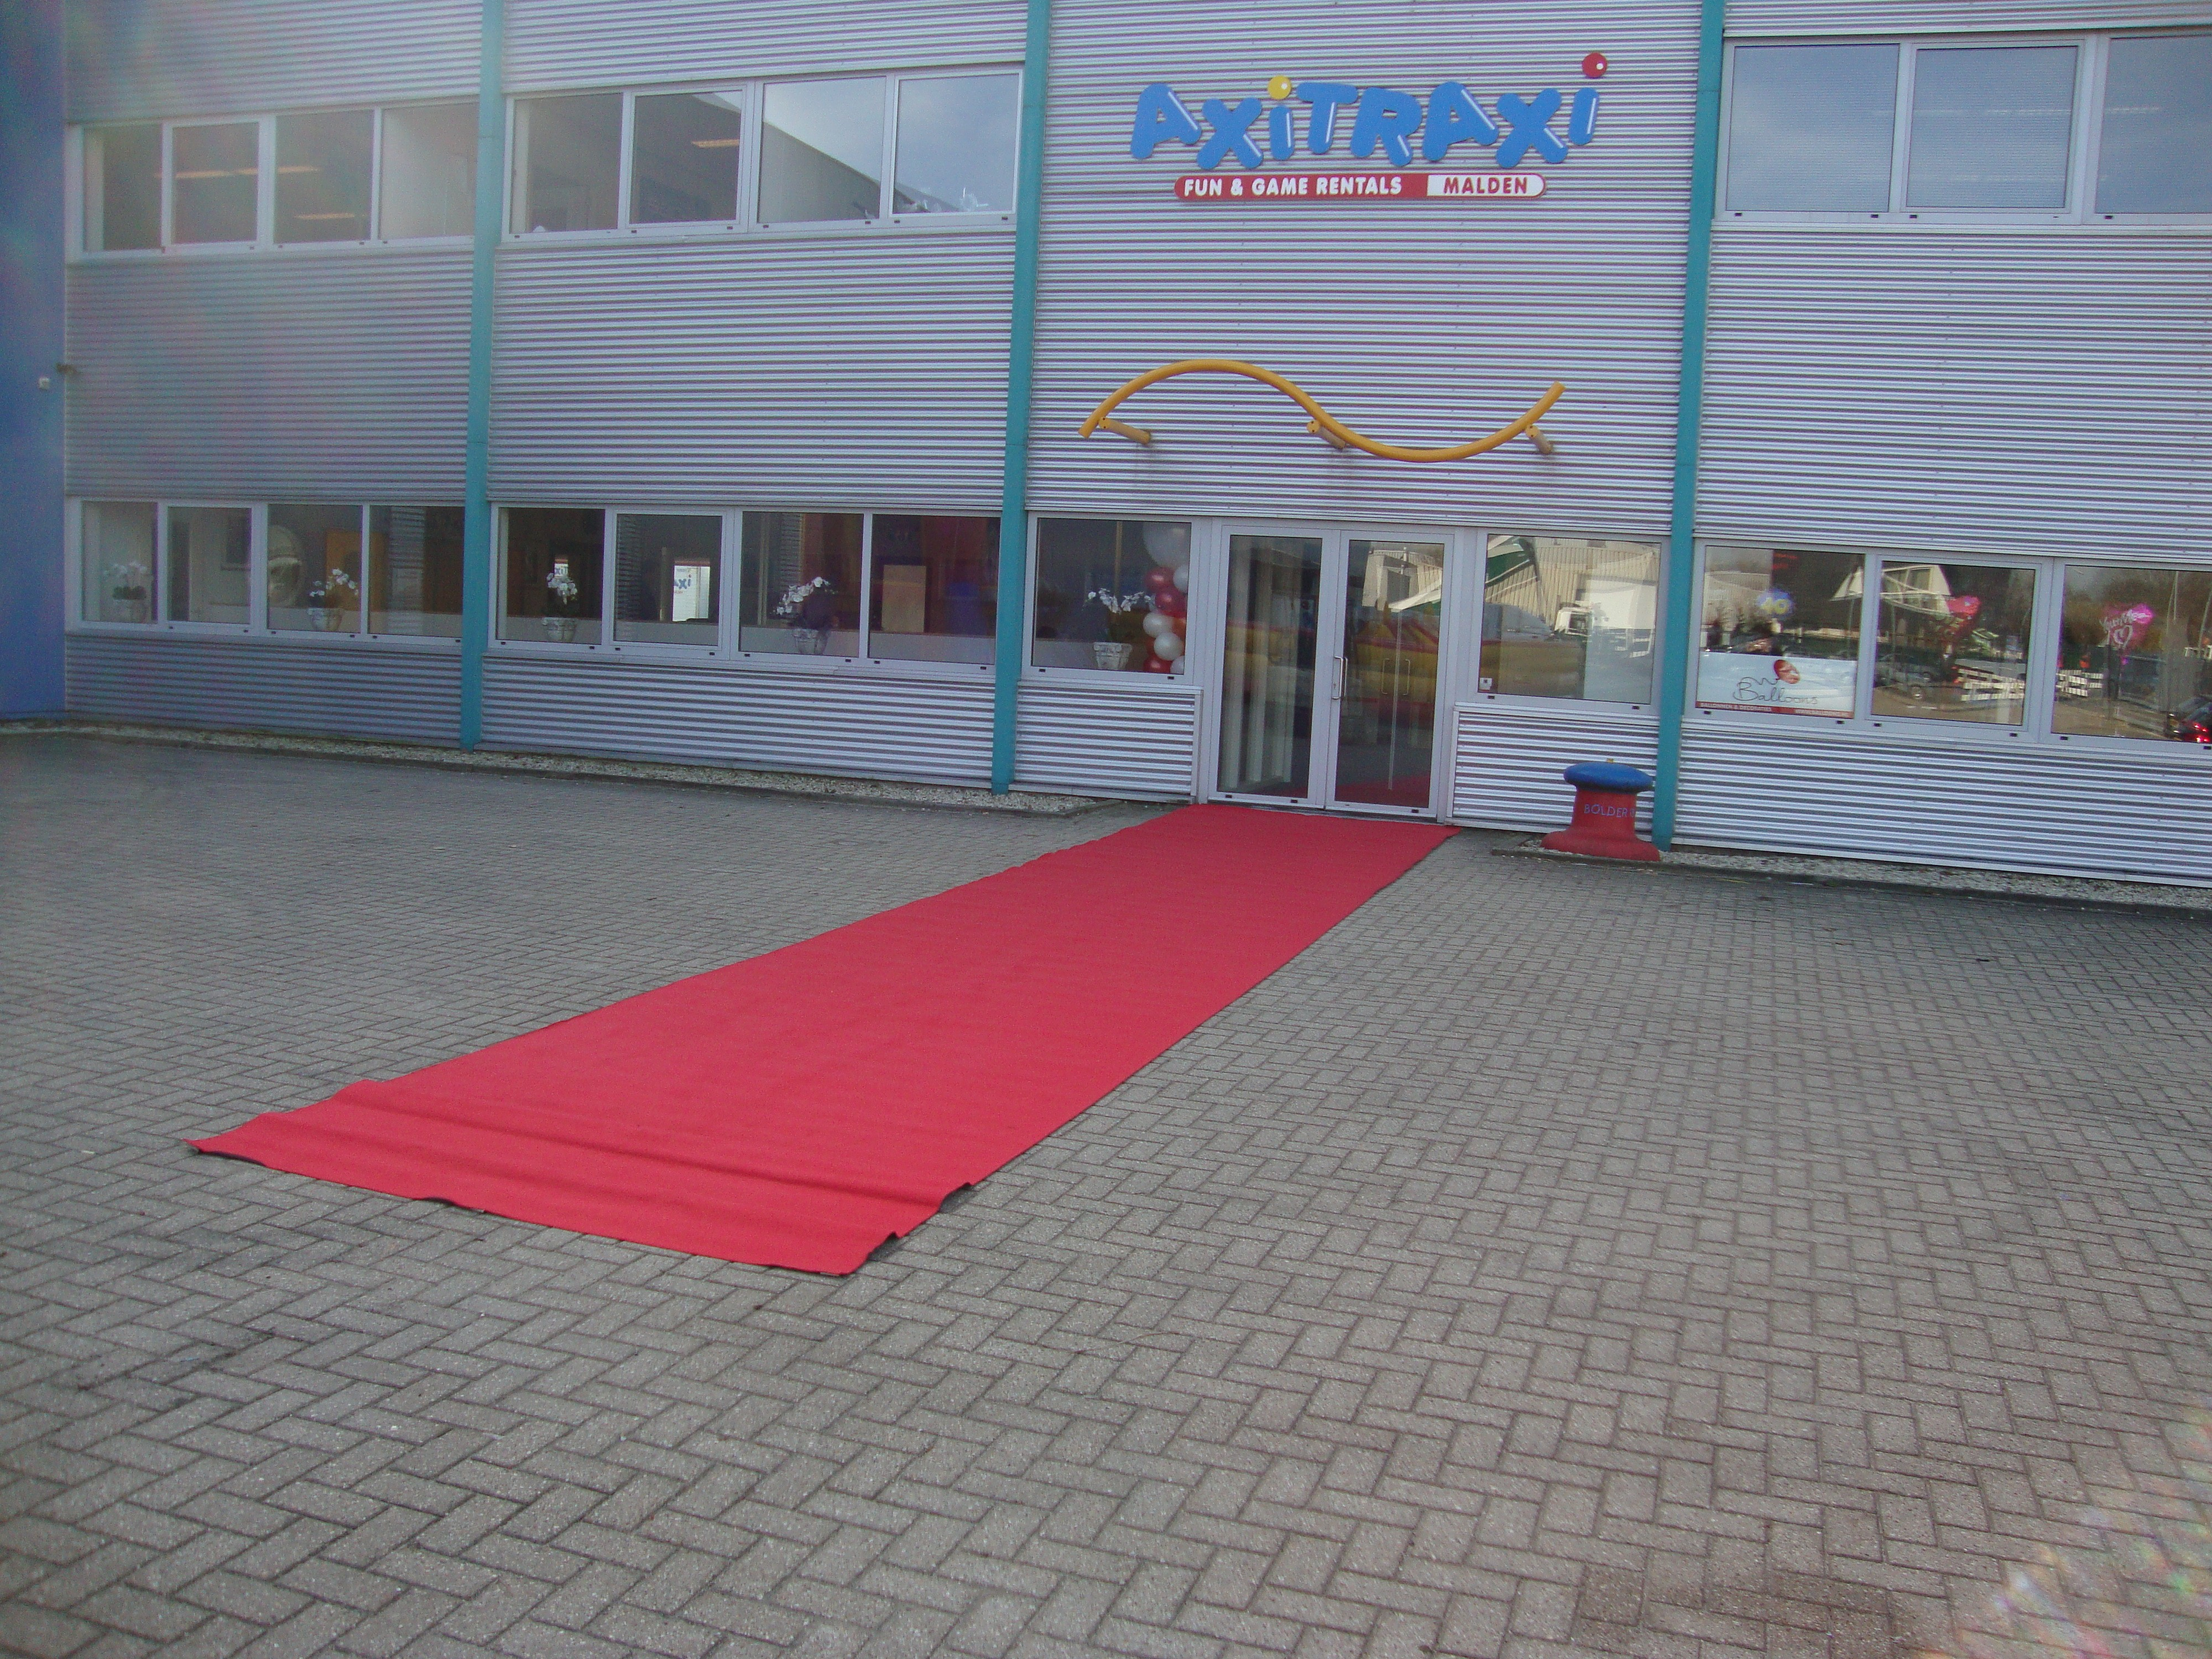 Roter Teppich Event Roter Teppich Mieten Interesting Roter Teppich Xm Rot